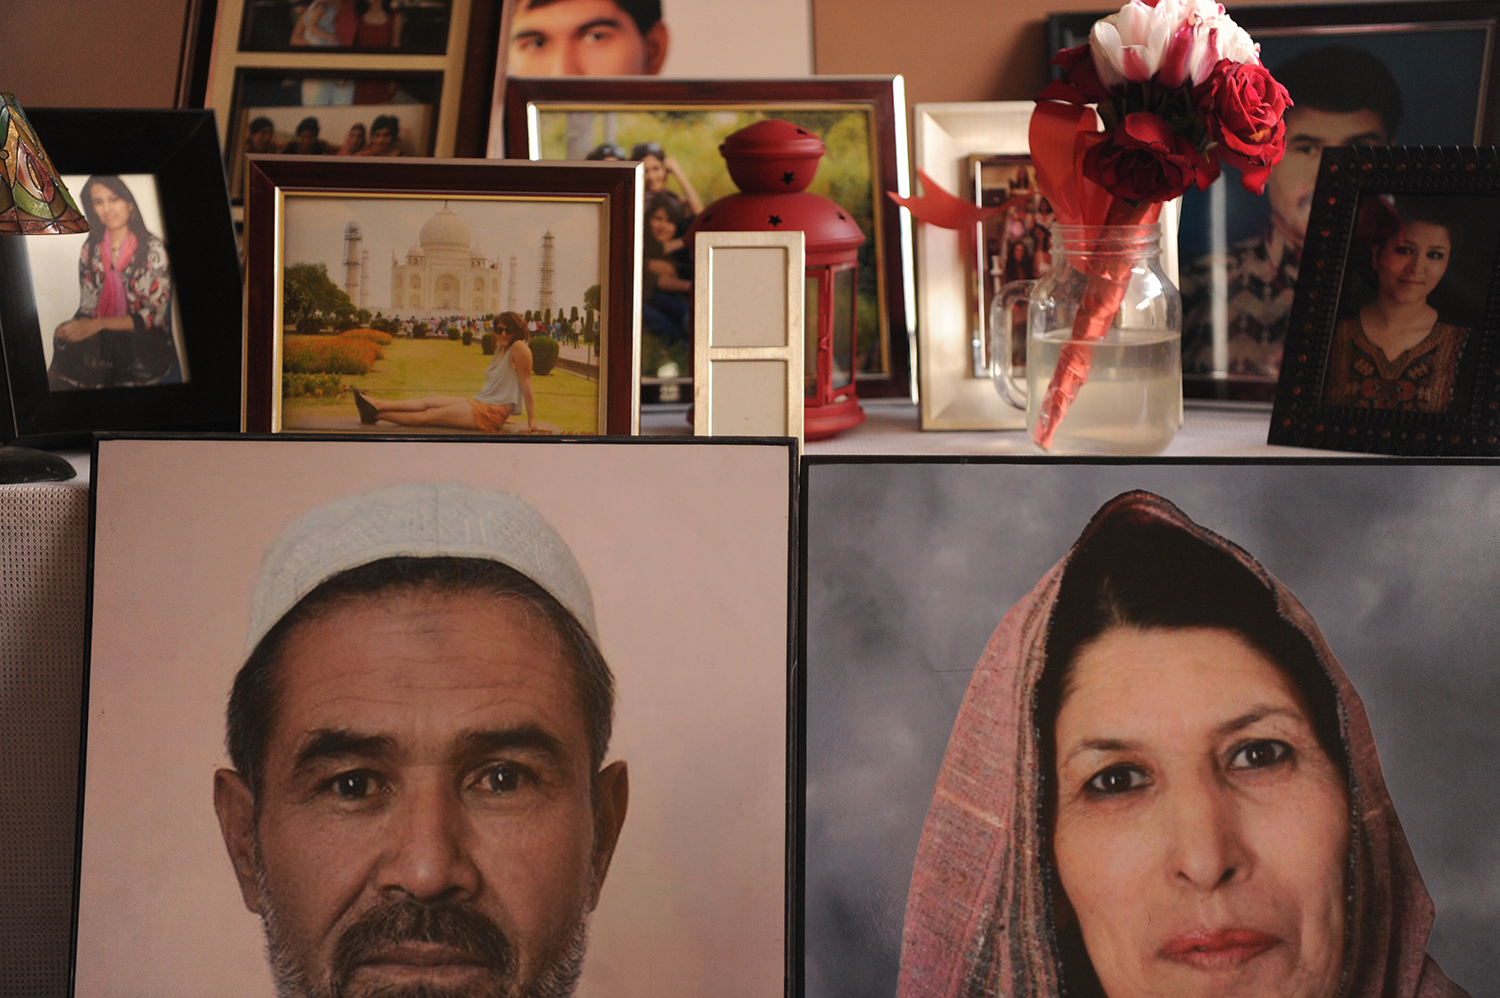 This photo shows pictures of 22-year-old Mubareka Sahar Fetrat, her parents in her bedroom in Kabul, Afghanistan, March 26, 2018. At the age of 21 Fetrat lost both her parents between January and August of 2017. © Farzana Wahidy